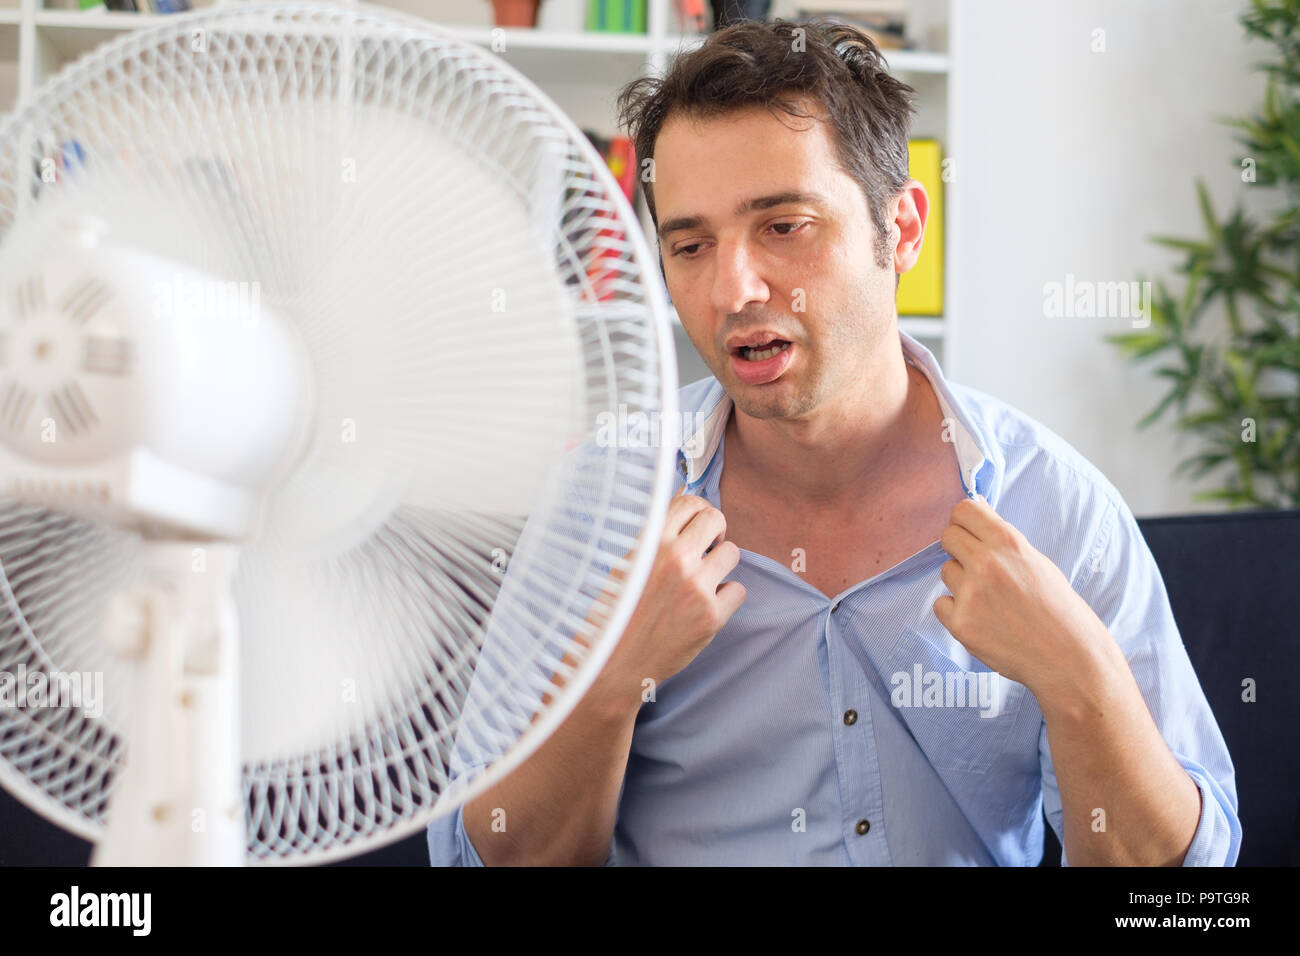 Man sweating and trying to refresh in summer haze - Stock Image